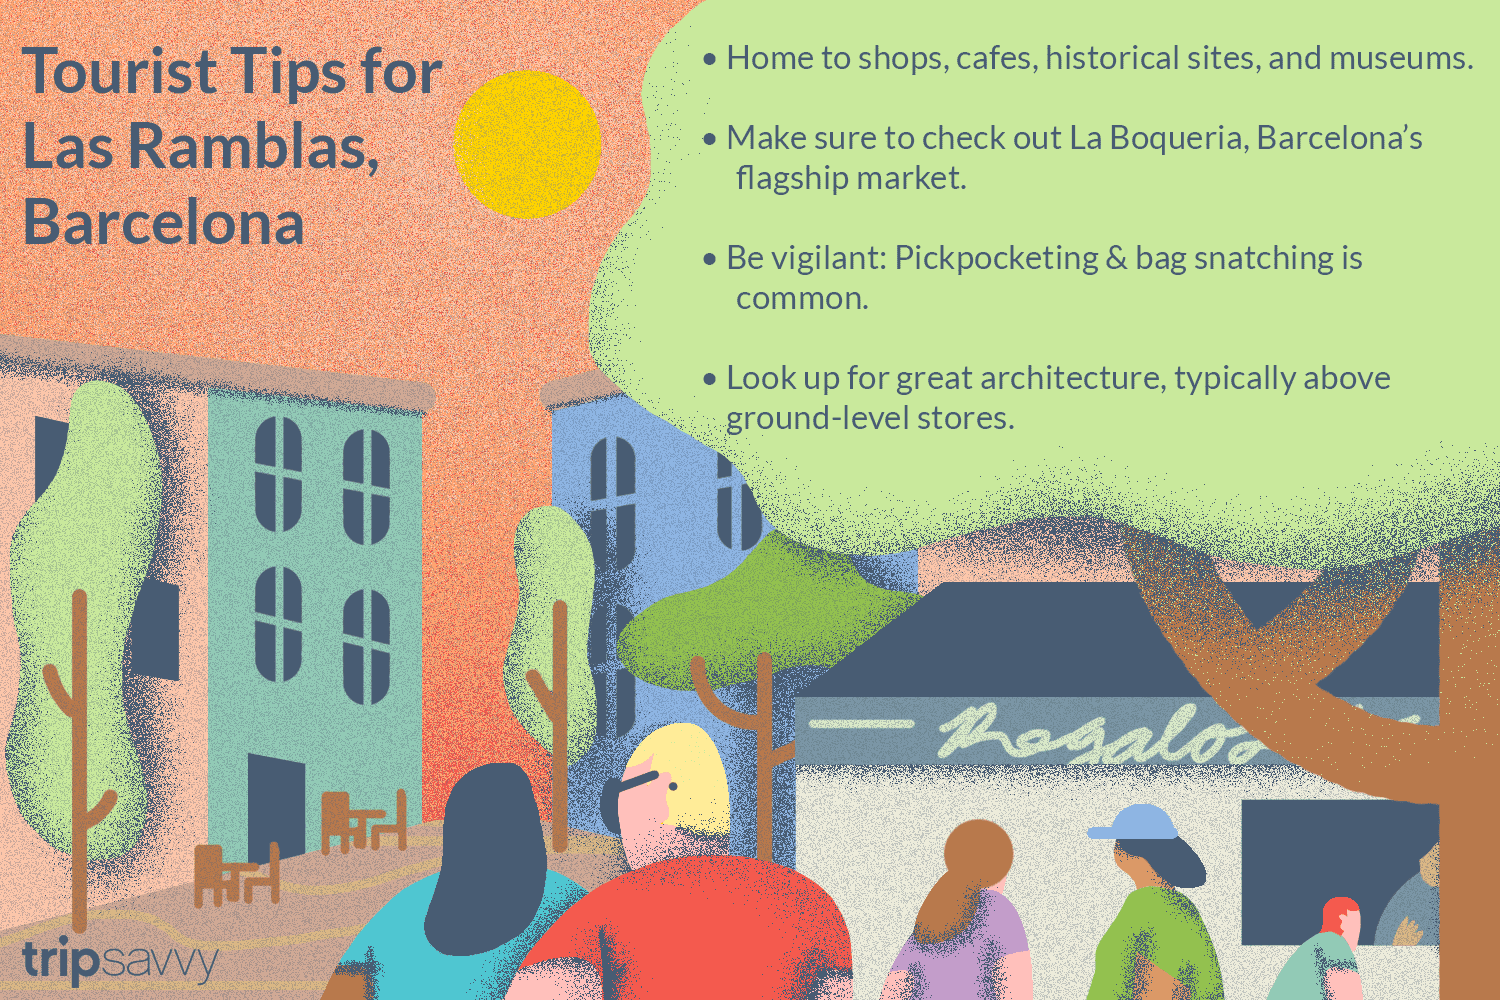 illustration of Las Ramblas with tips from the article